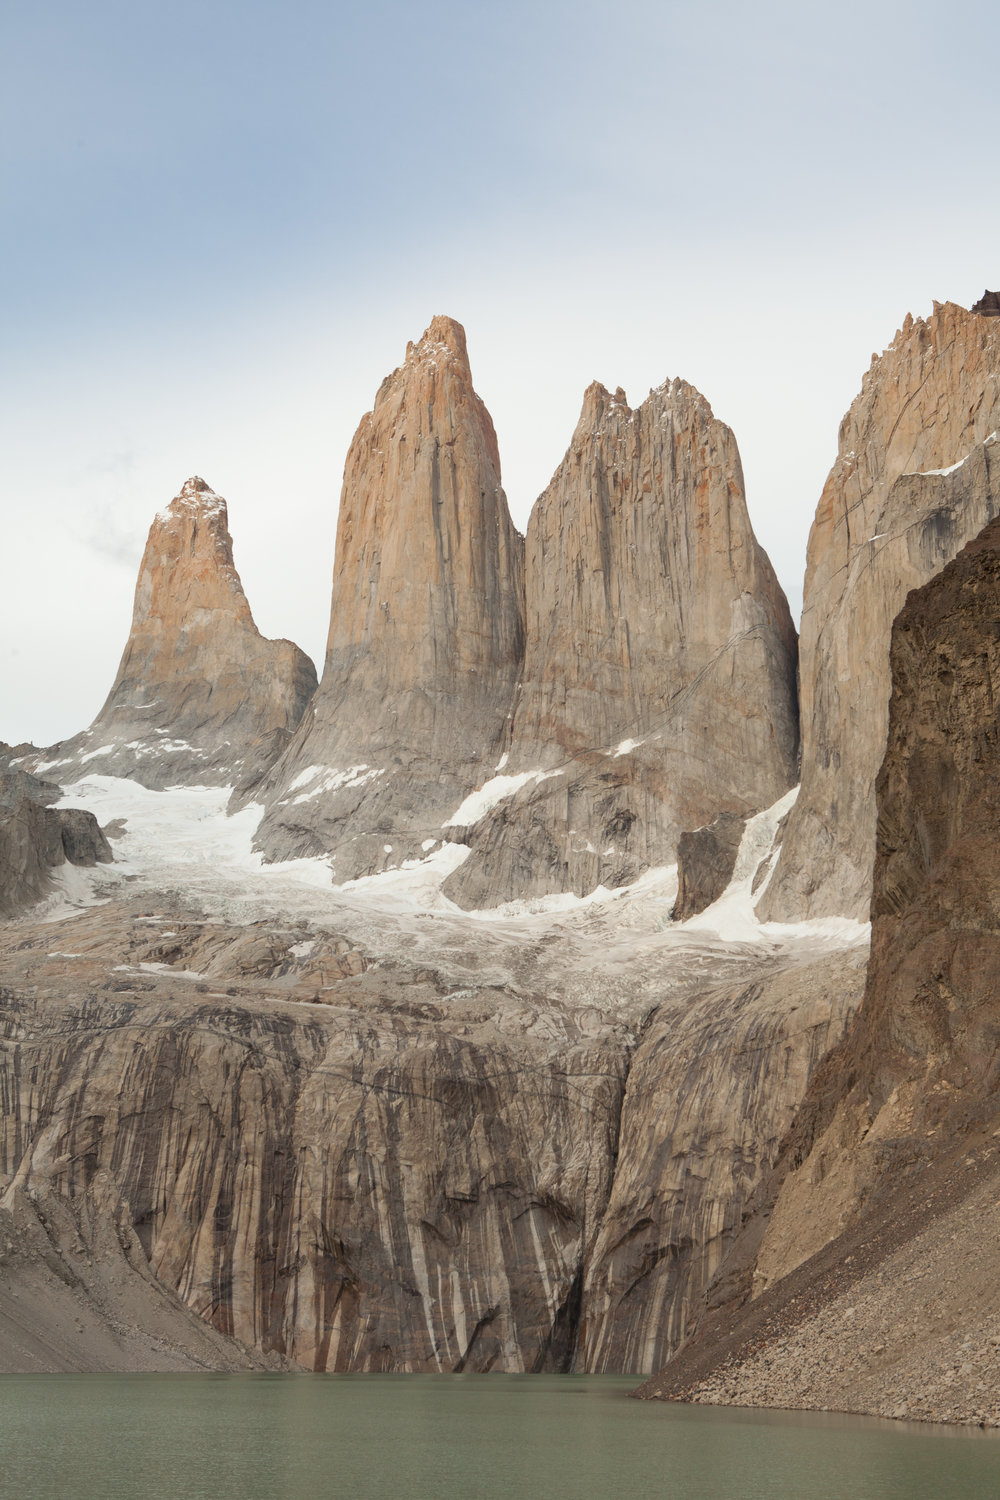 Torres Del Paine spires.   We lucked out with great weather and clear skies.   The sunrise was lovely even though we didn't see famed red glow.   After the sunrise, we said goodbye to the spires and began our trek out of the park.